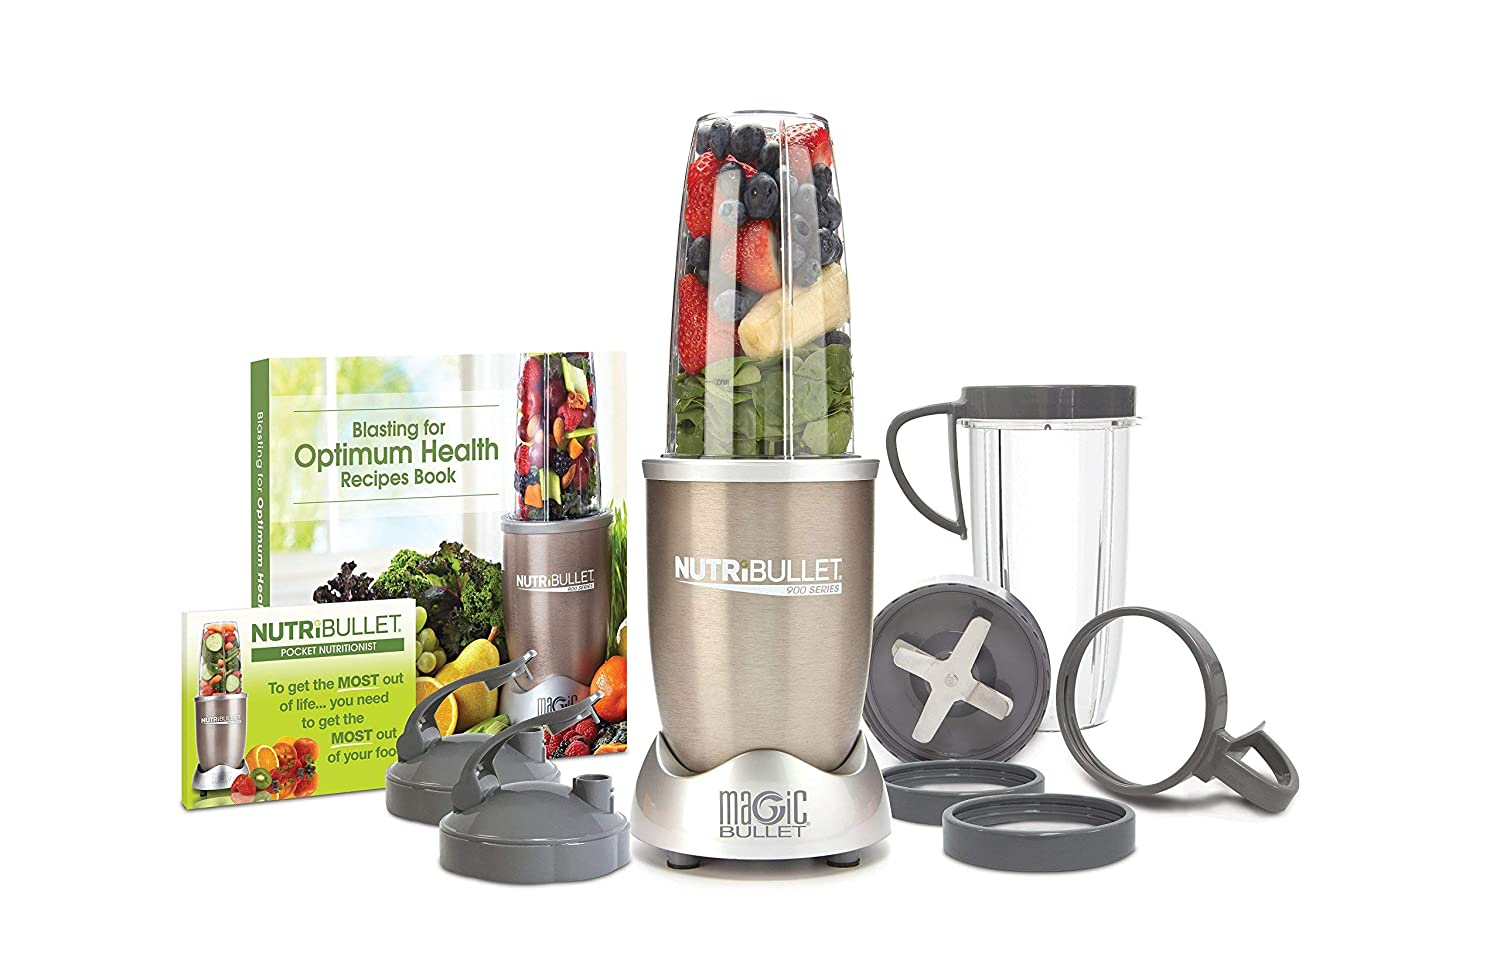 NutriBullet Pro - 13-Piece High-Speed Blender/Mixer System with Hardcover Recipe Book Included (900 Watts) (Certified Refurbished)